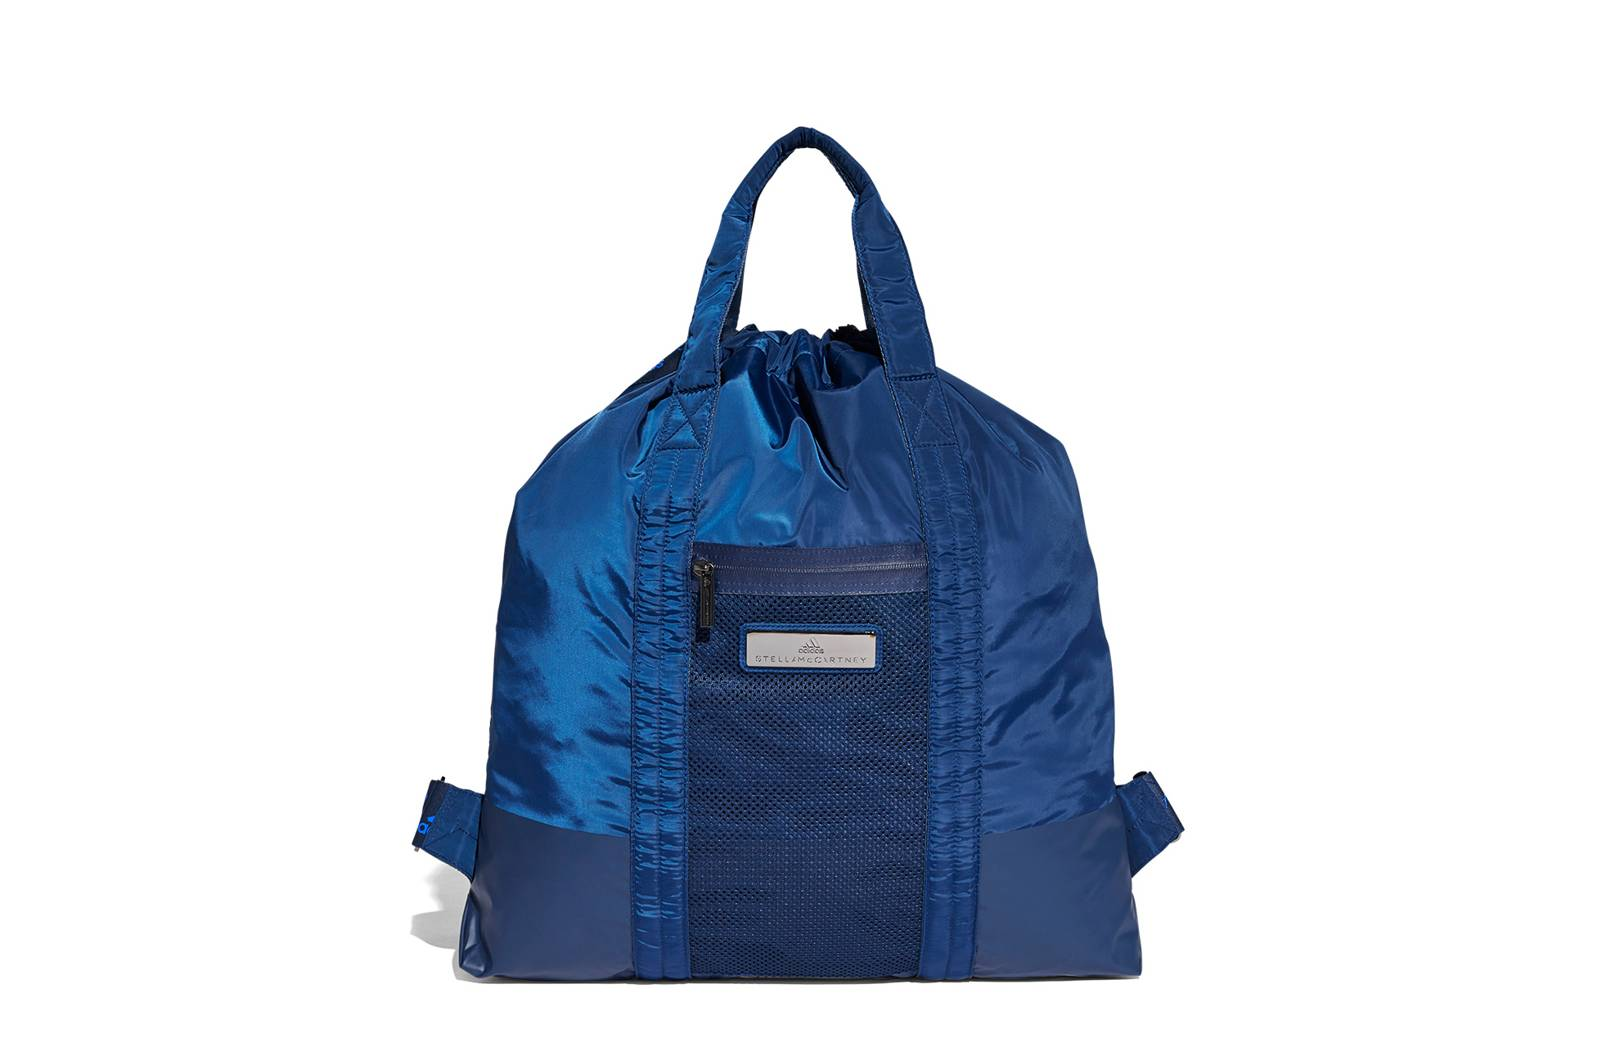 82f4e7663be6 Gym Bags For Women